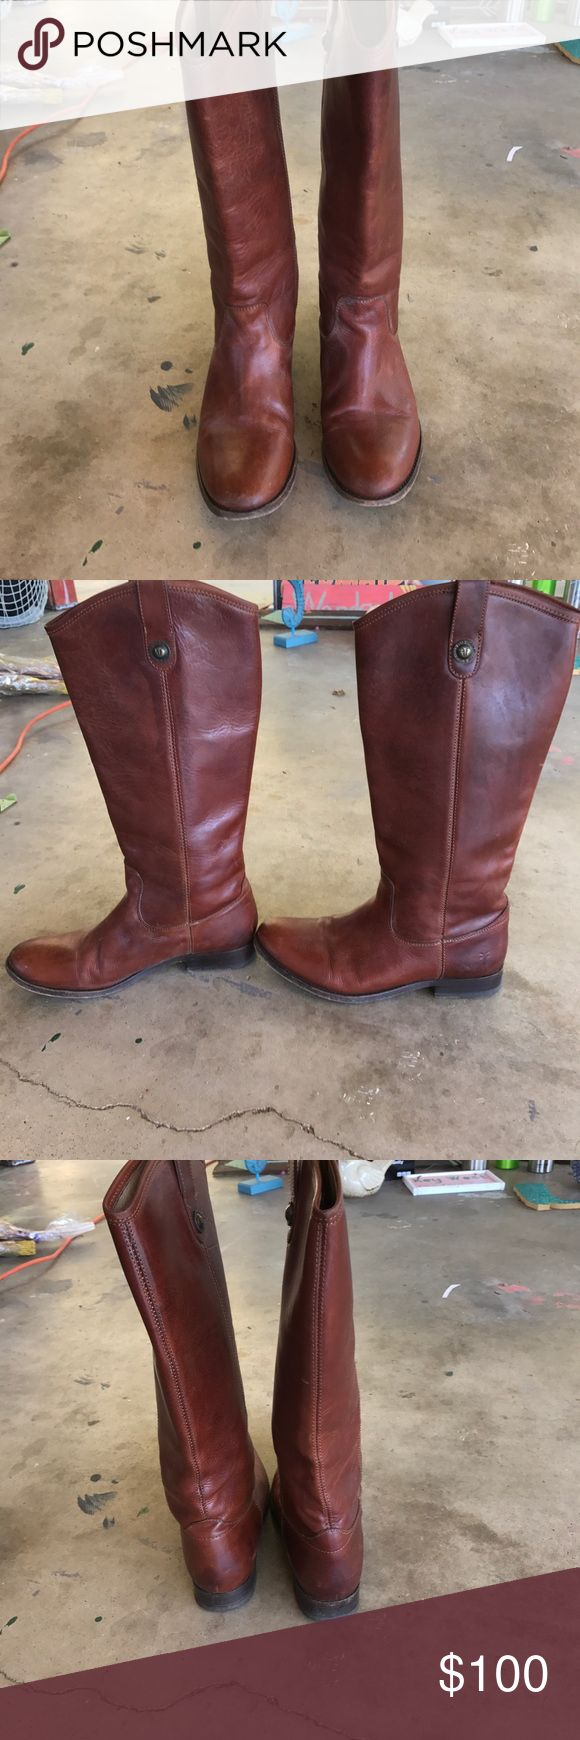 Frye Riding Boots Camel color Frye riding boots. Size 8. Normal wear and tear on boots. Frye Shoes Winter & Rain Boots